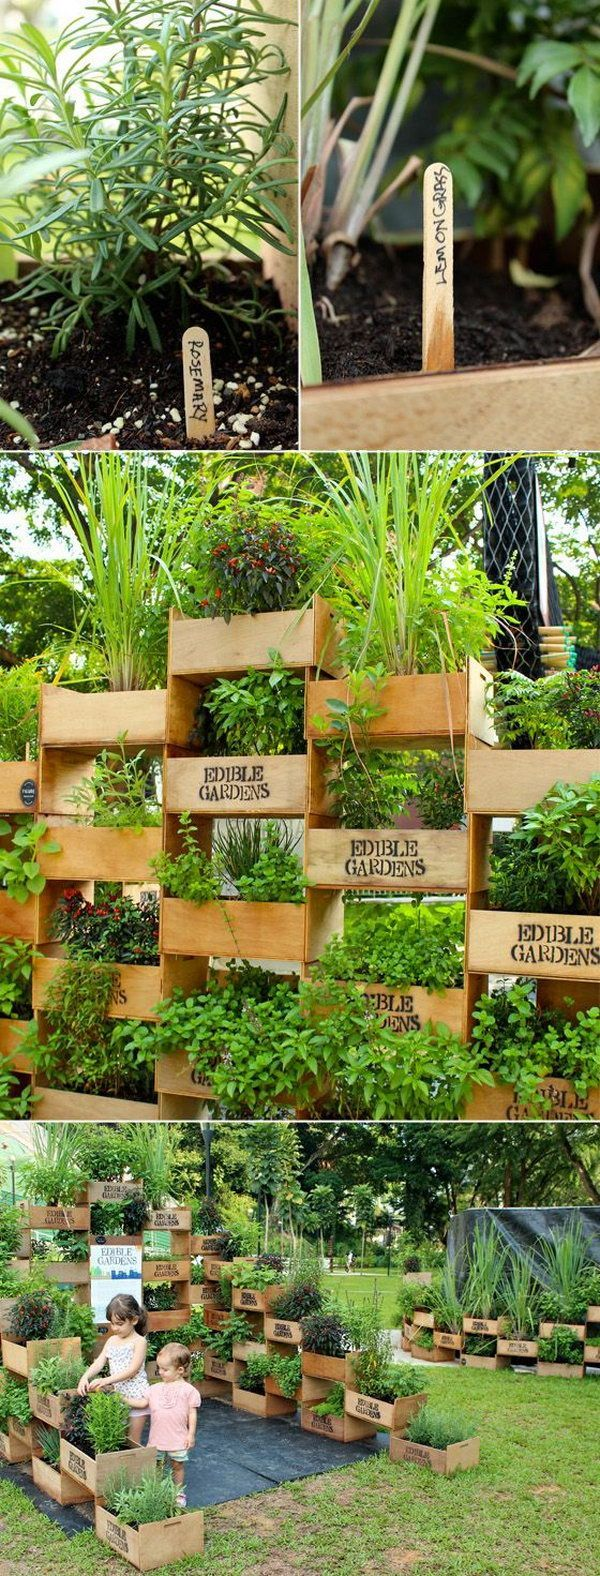 vertical garden from old crates, Cool Vertical Gardening Ideas, http://hative.com/cool-vertical-gardening-ideas/,